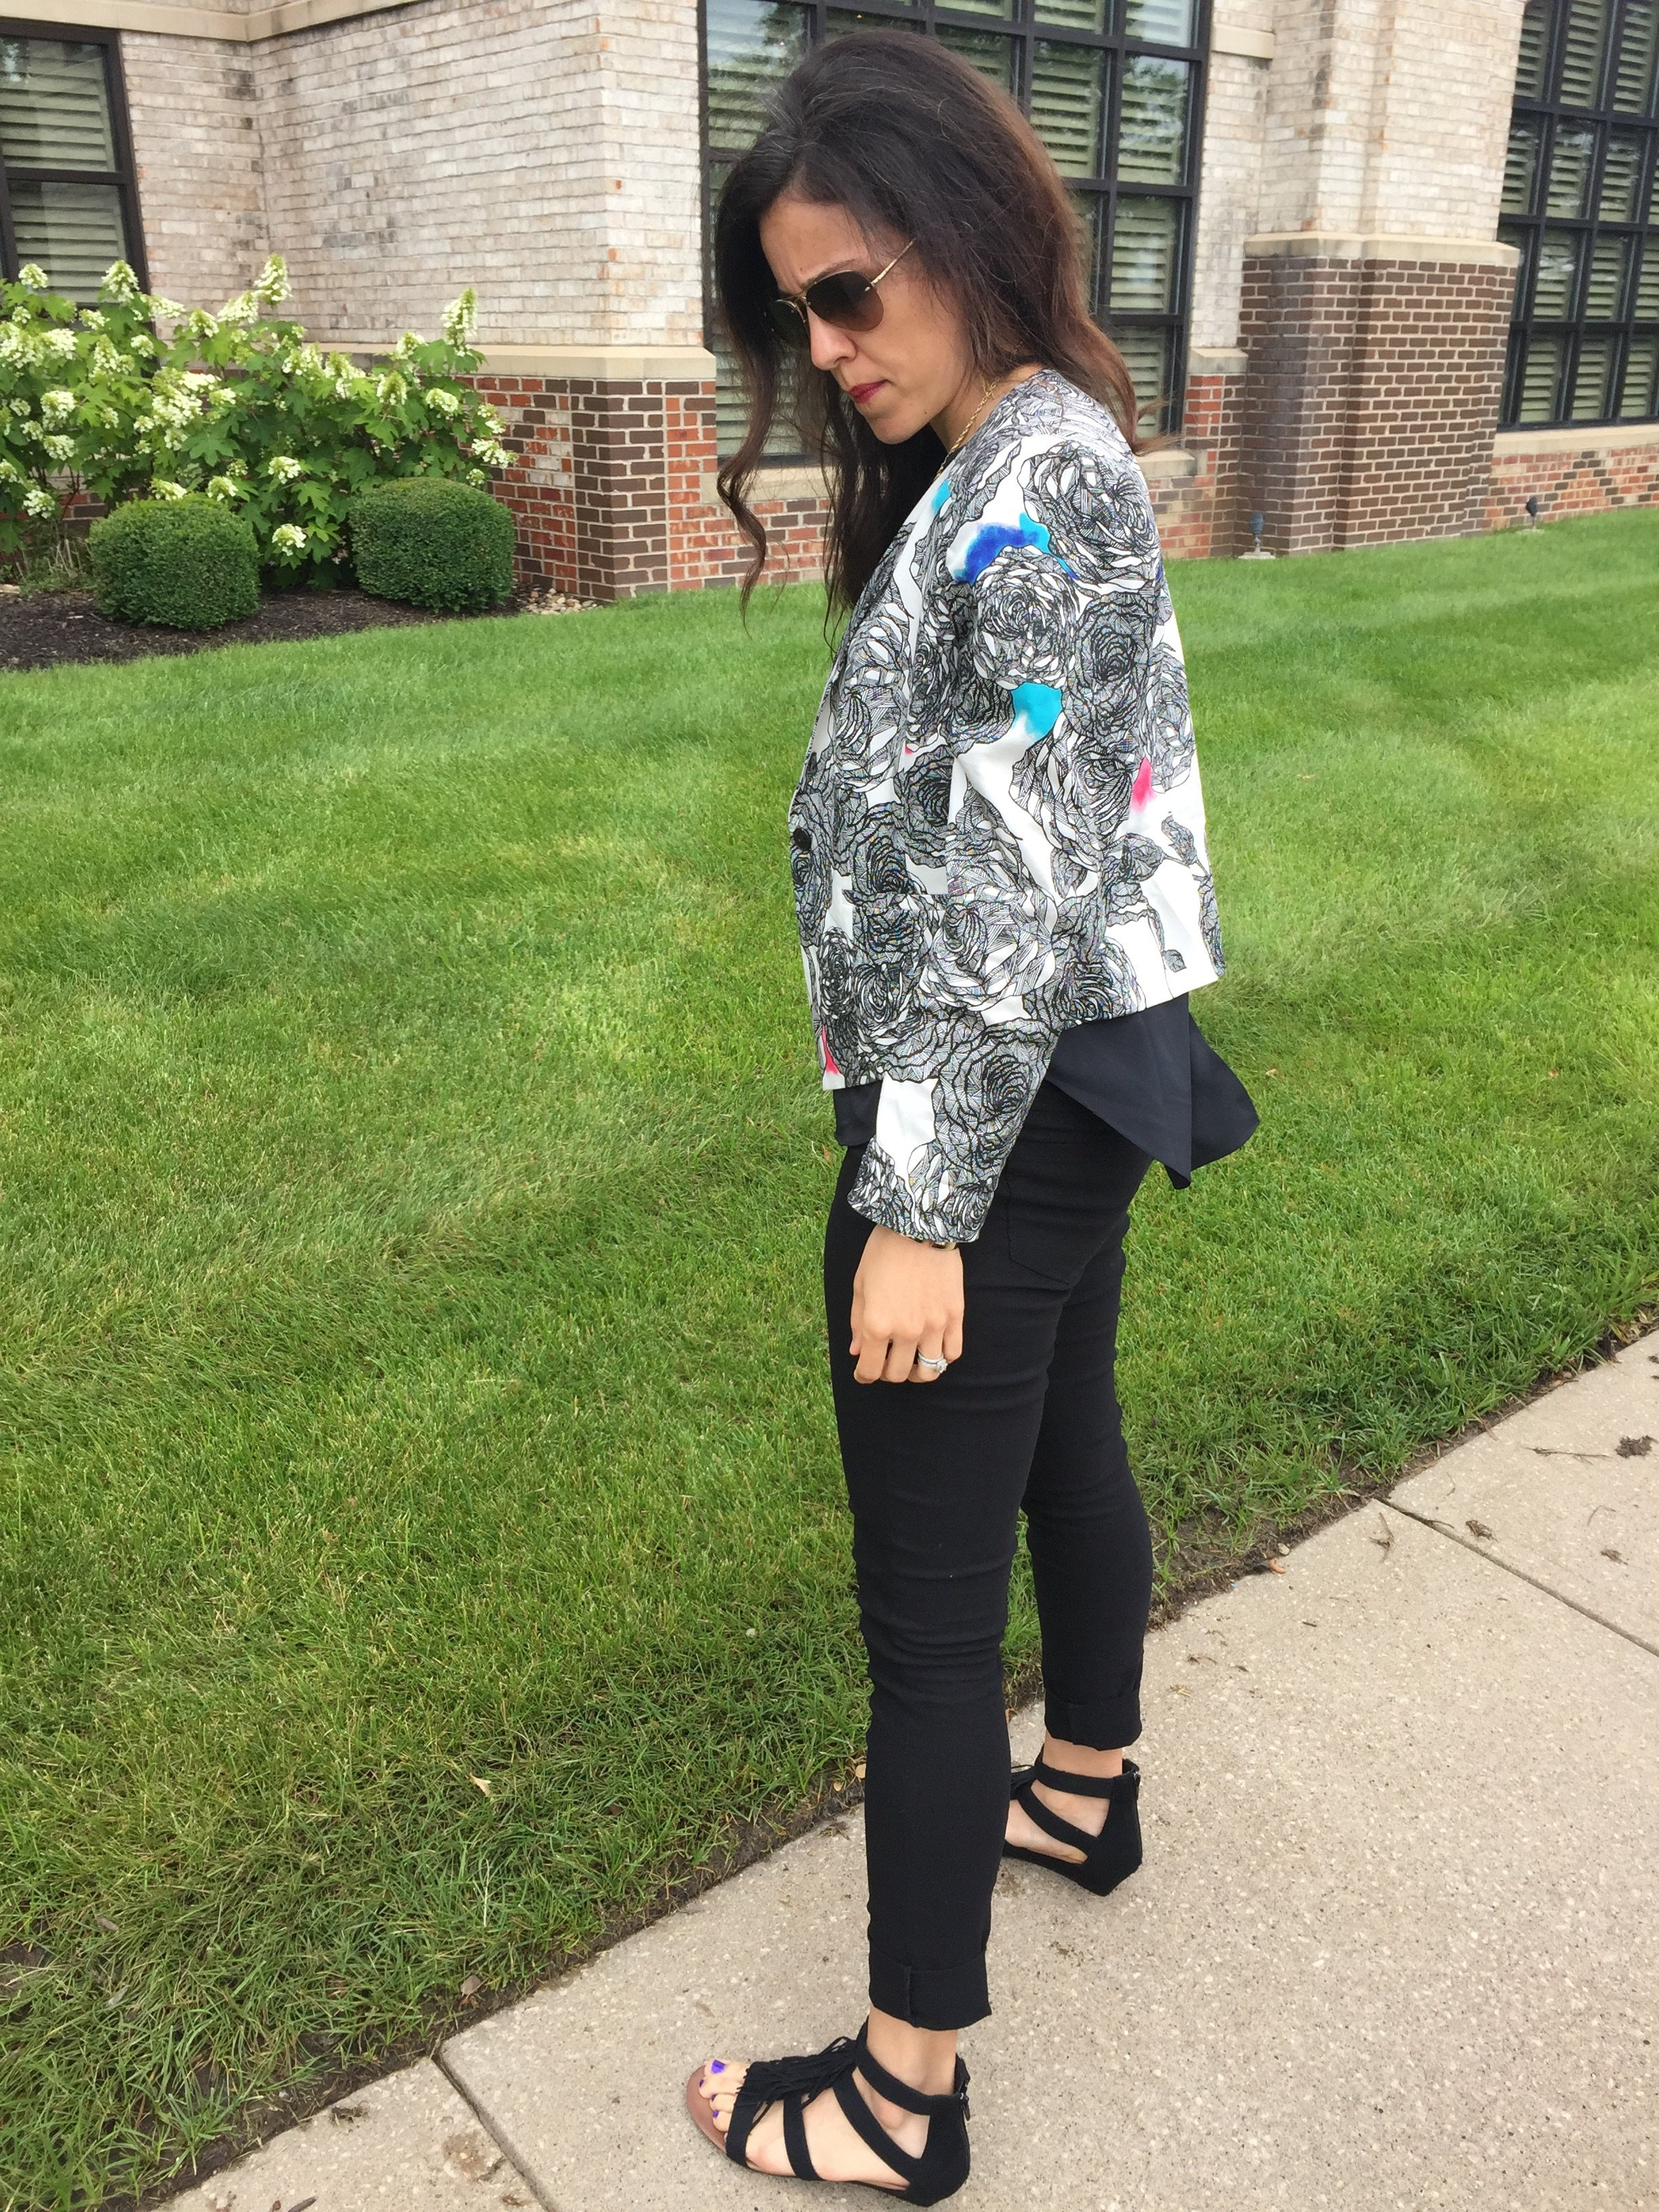 How to style a floral blazer | spring fashion tips | spring and summer style ideas | warm weather fashion | fringe shoes outfit